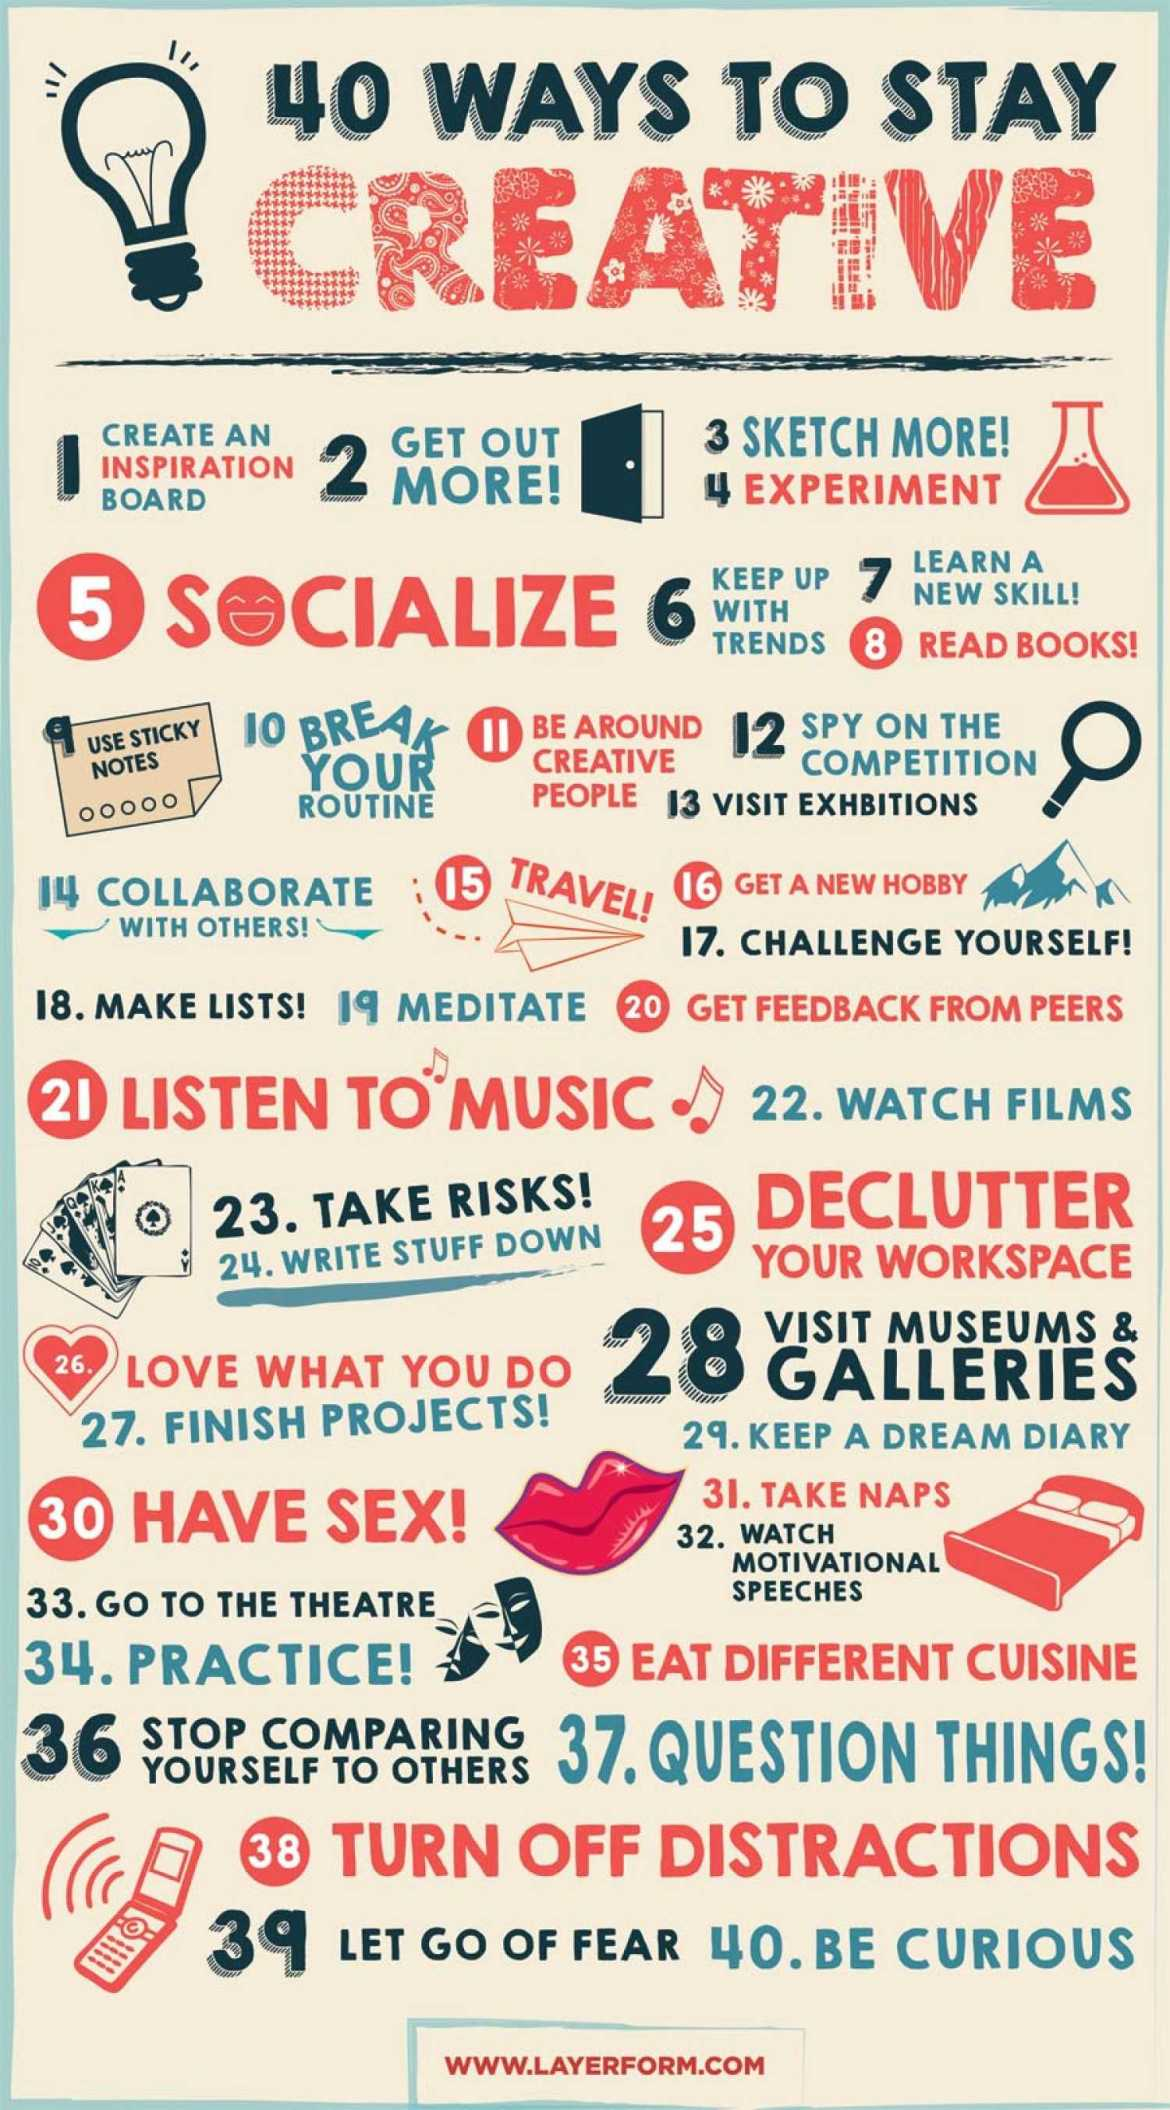 40-ways-to-stay-creative_infographie